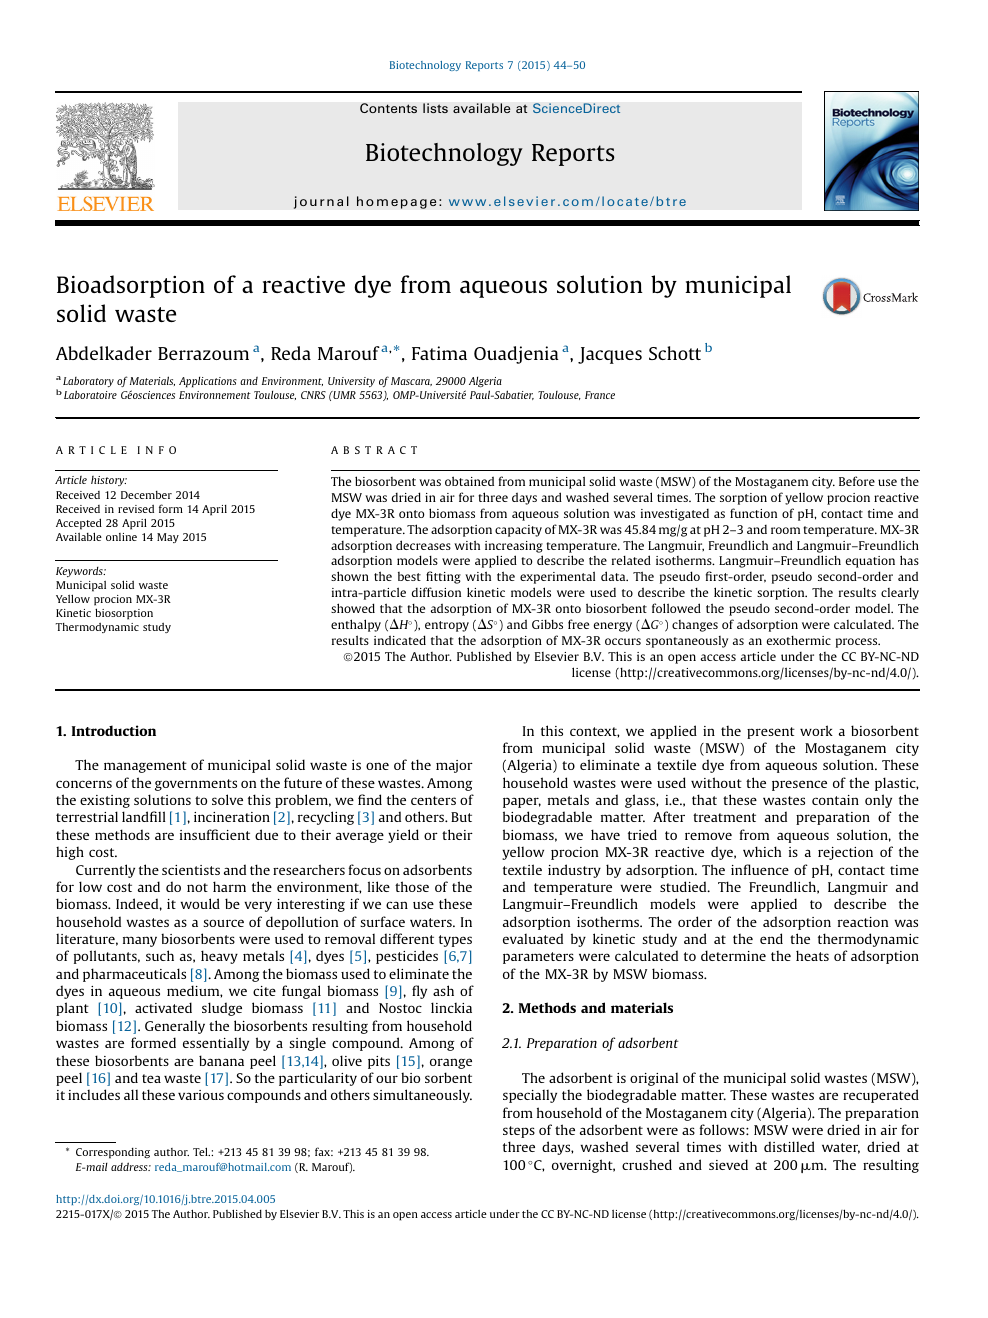 Bioadsorption of a reactive dye from aqueous solution by